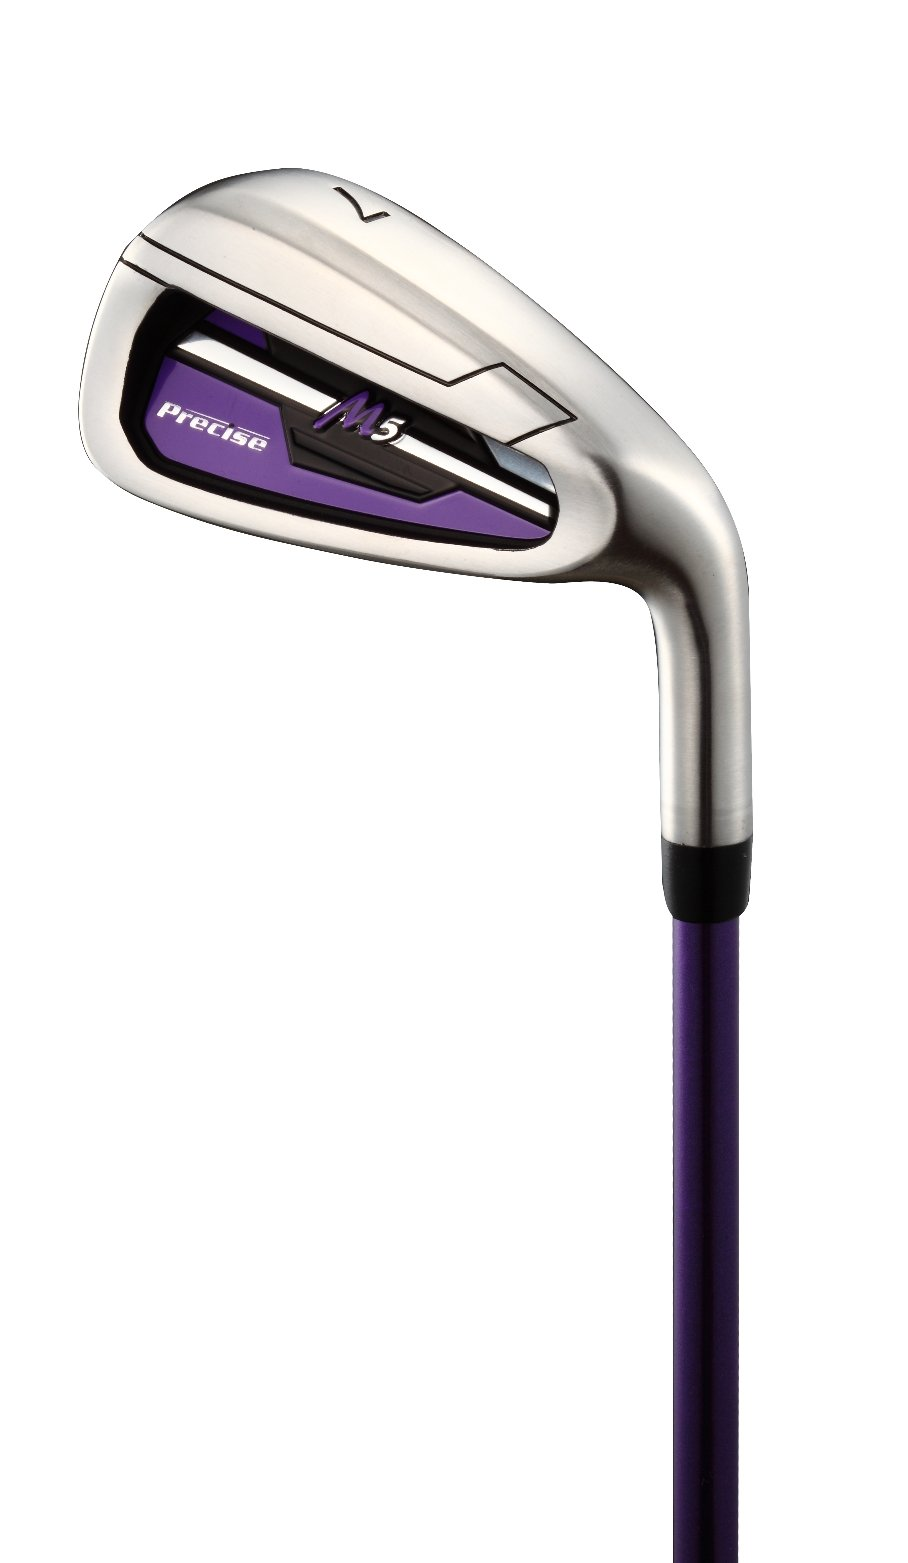 Precise M5 Ladies Womens Complete Right Handed Golf Clubs Set Includes Titanium Driver, S.S. Fairway, S.S. Hybrid, S.S. 5-PW Irons, Putter, Stand Bag, 3 H/C's Purple (Right Hand Petite Size -1'') by PreciseGolf Co. (Image #5)